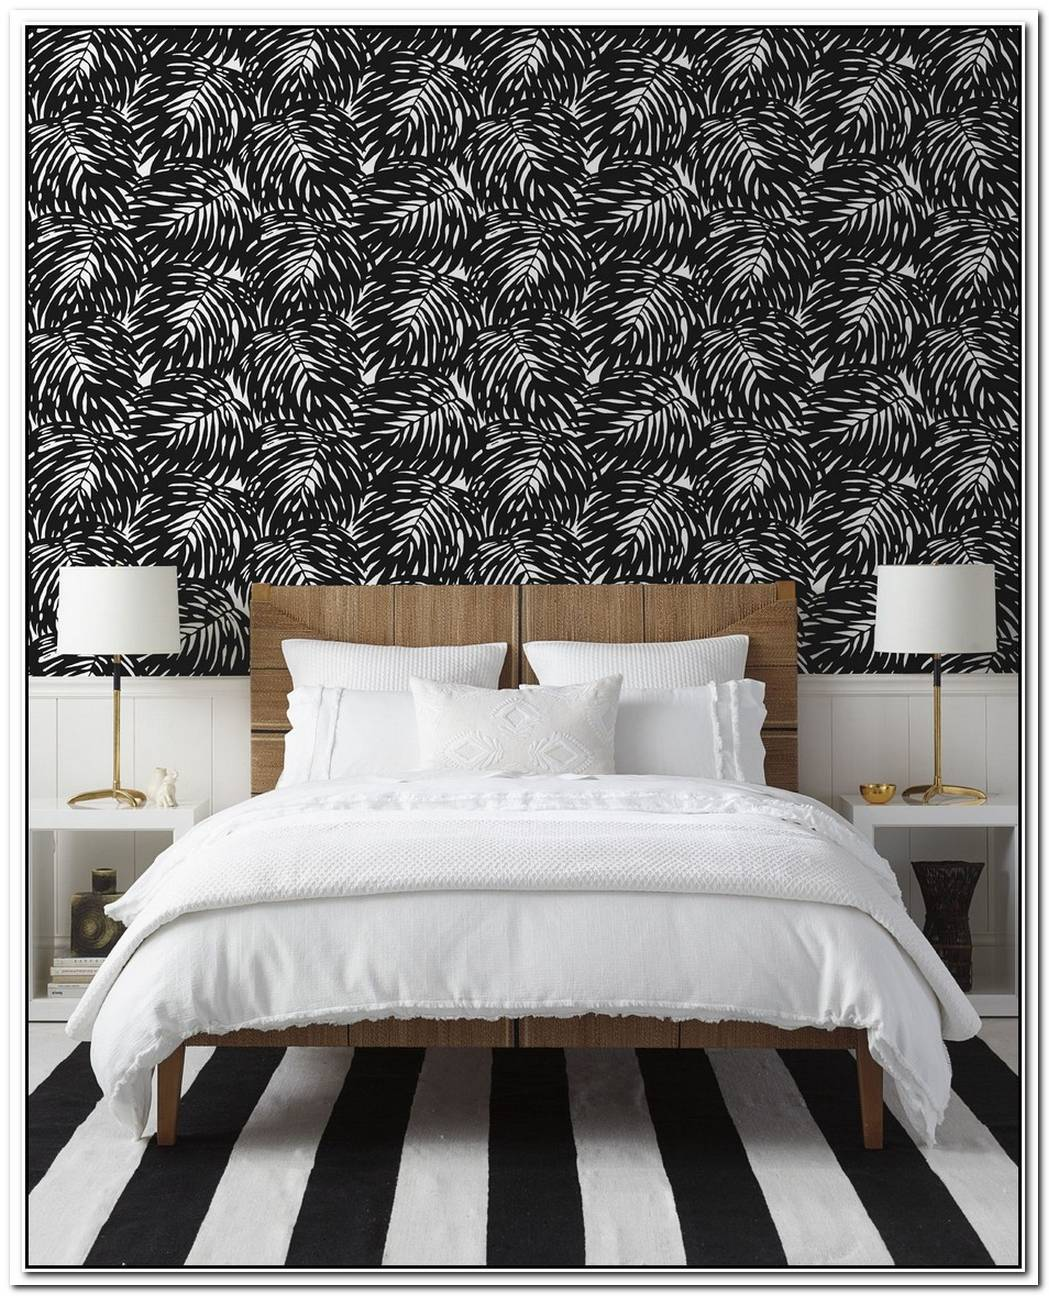 Texture Elevates A Dreamy Black And White Bedroom